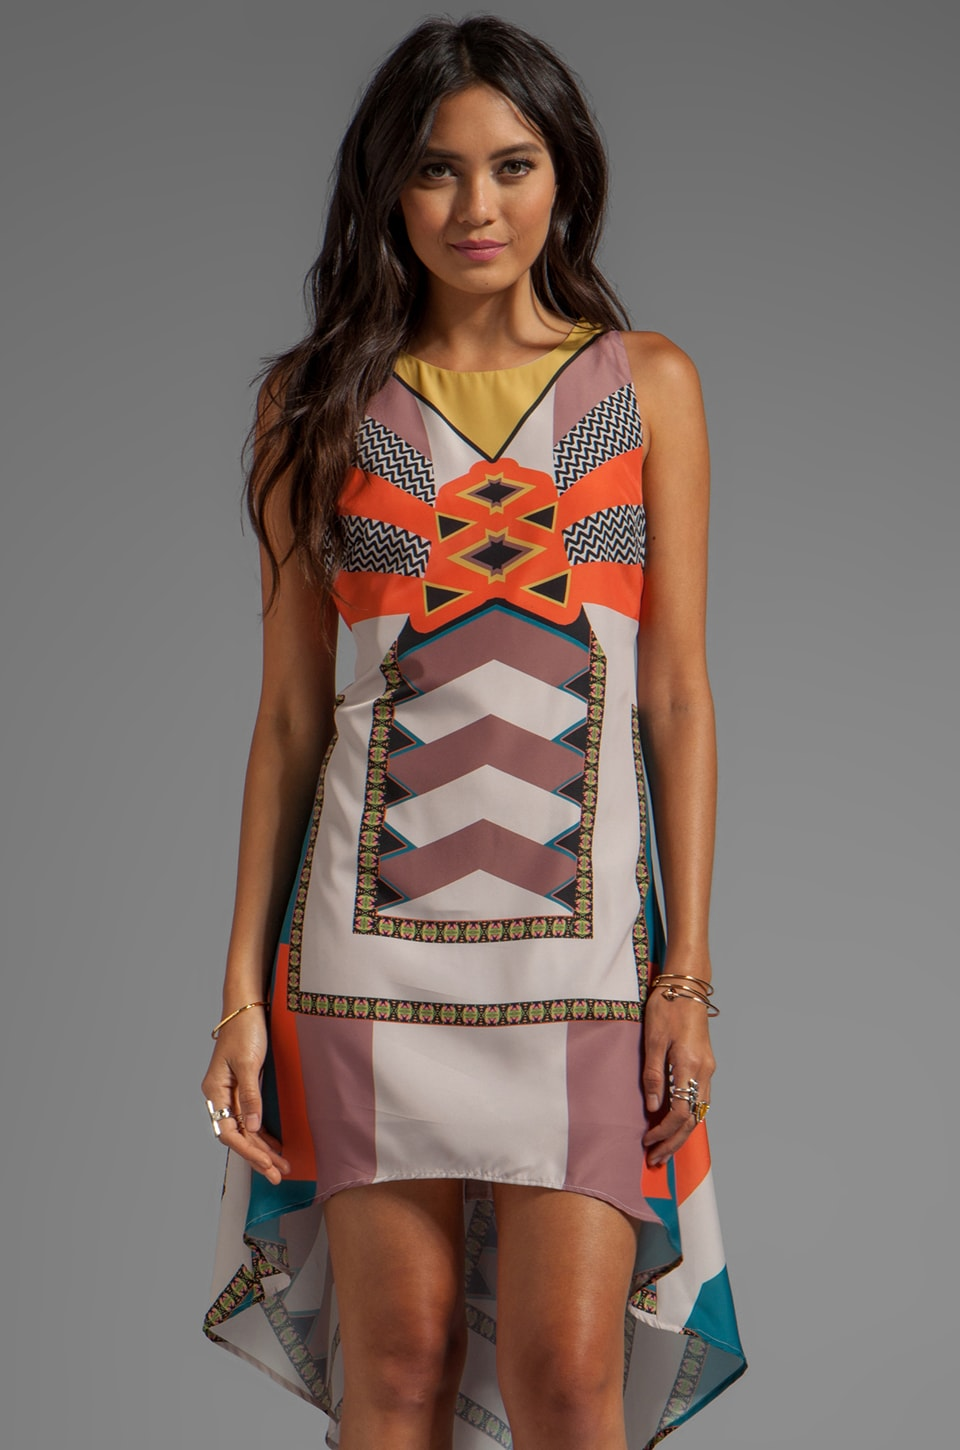 Ladakh El Salvador Dress in Multi